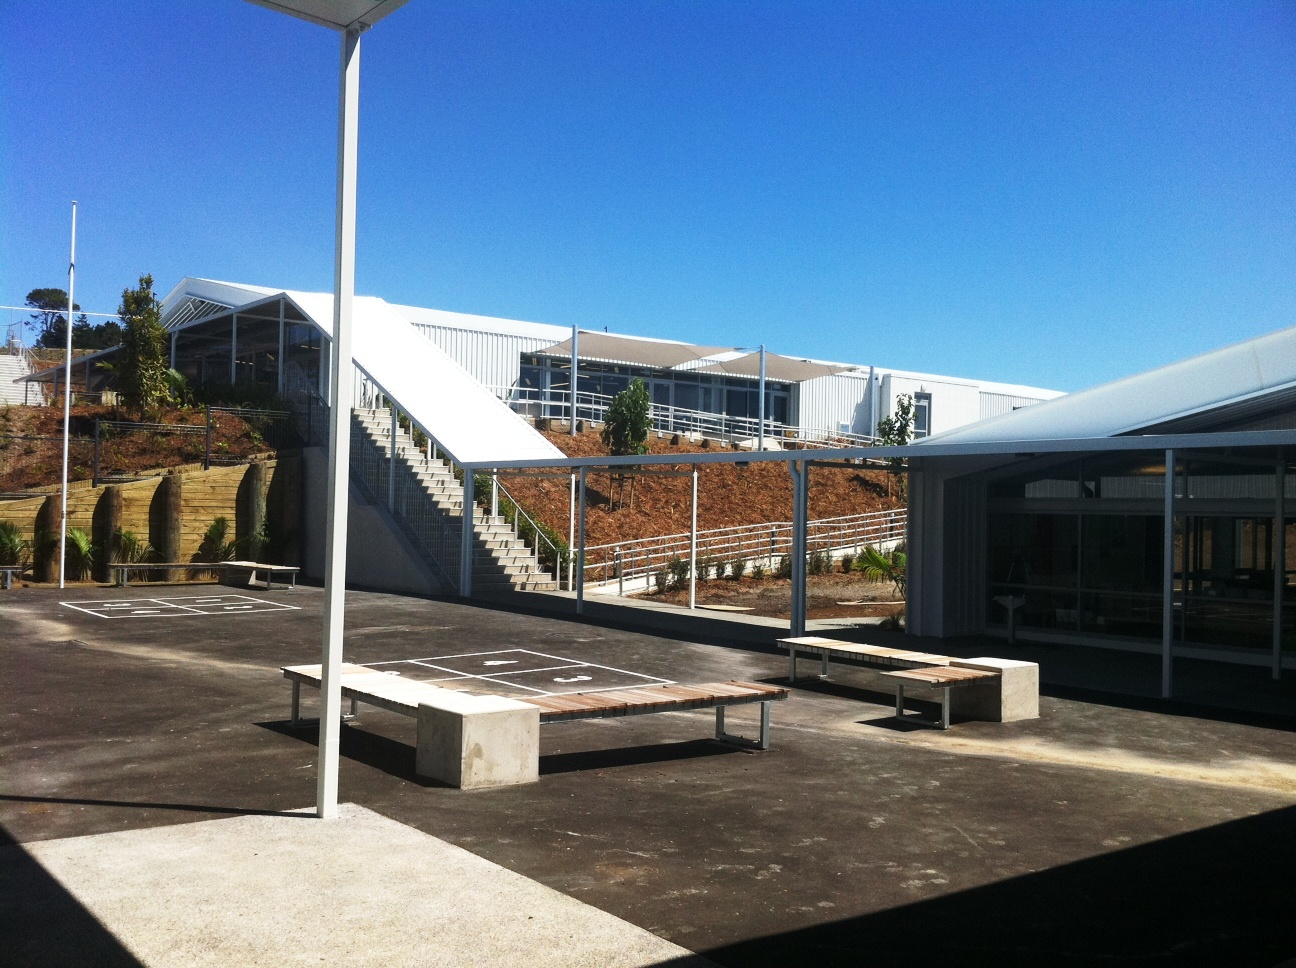 Courtyard and Upper Modern Learning Environment